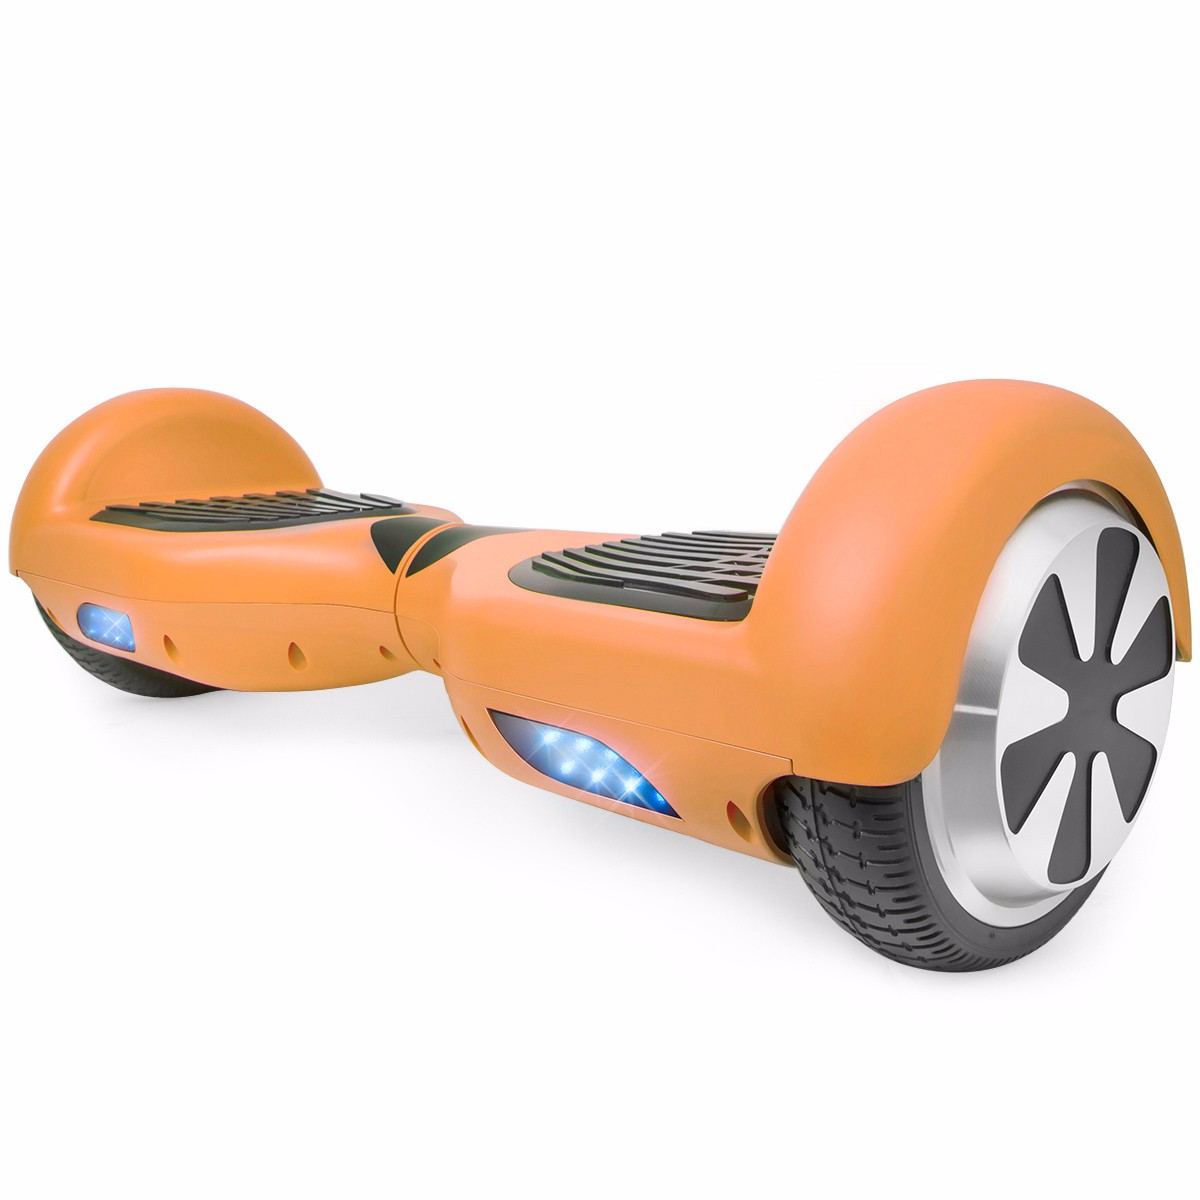 Self Balancing Electric Scooter Hoverboard UL CERTIFIED, Matte Gold